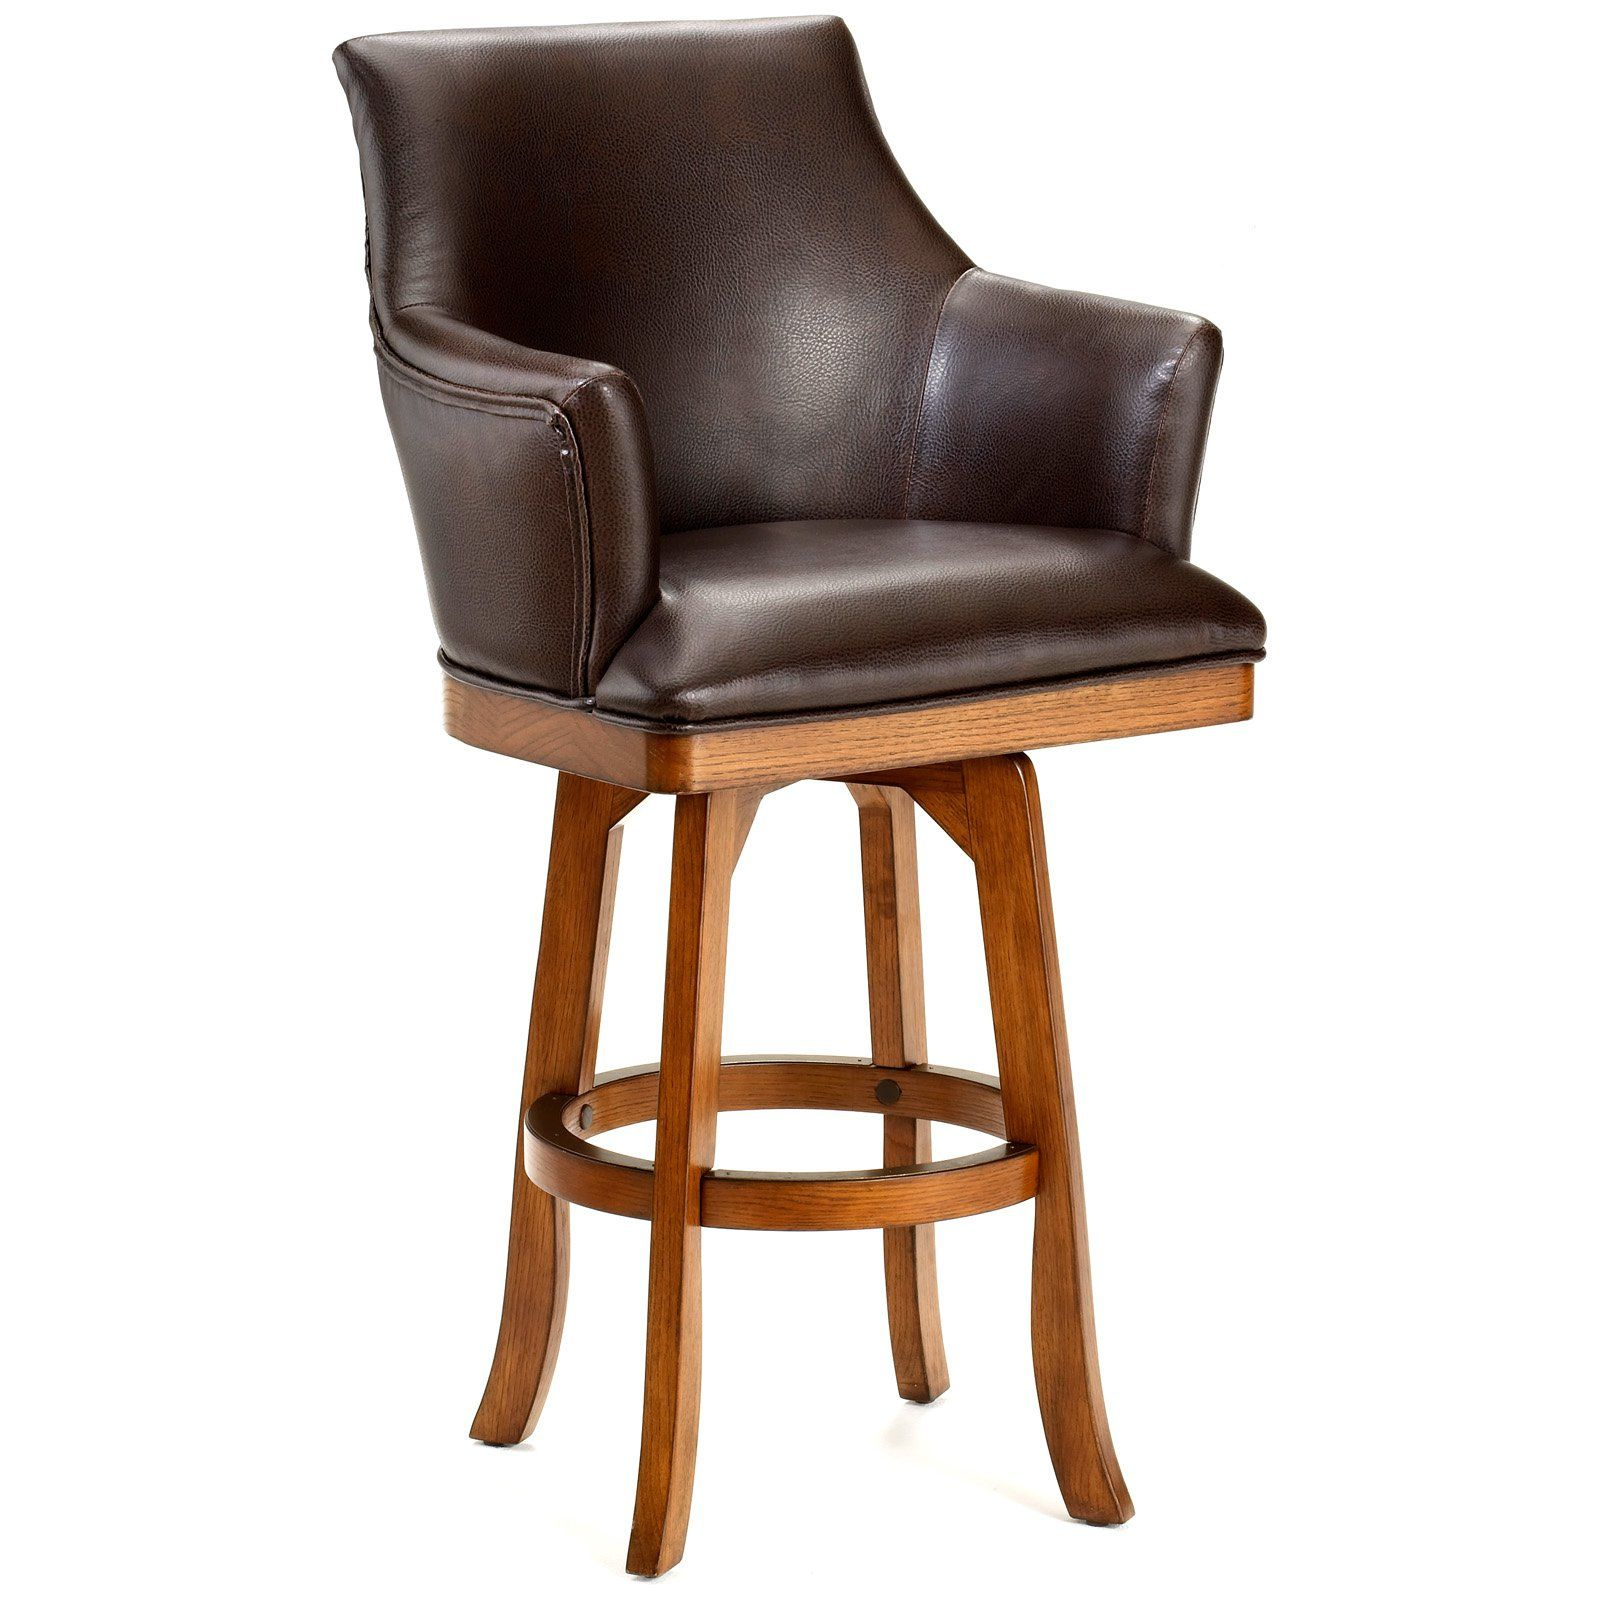 2018 Leather Bar Stools With Arms Modern Wood Furniture Check More At Http